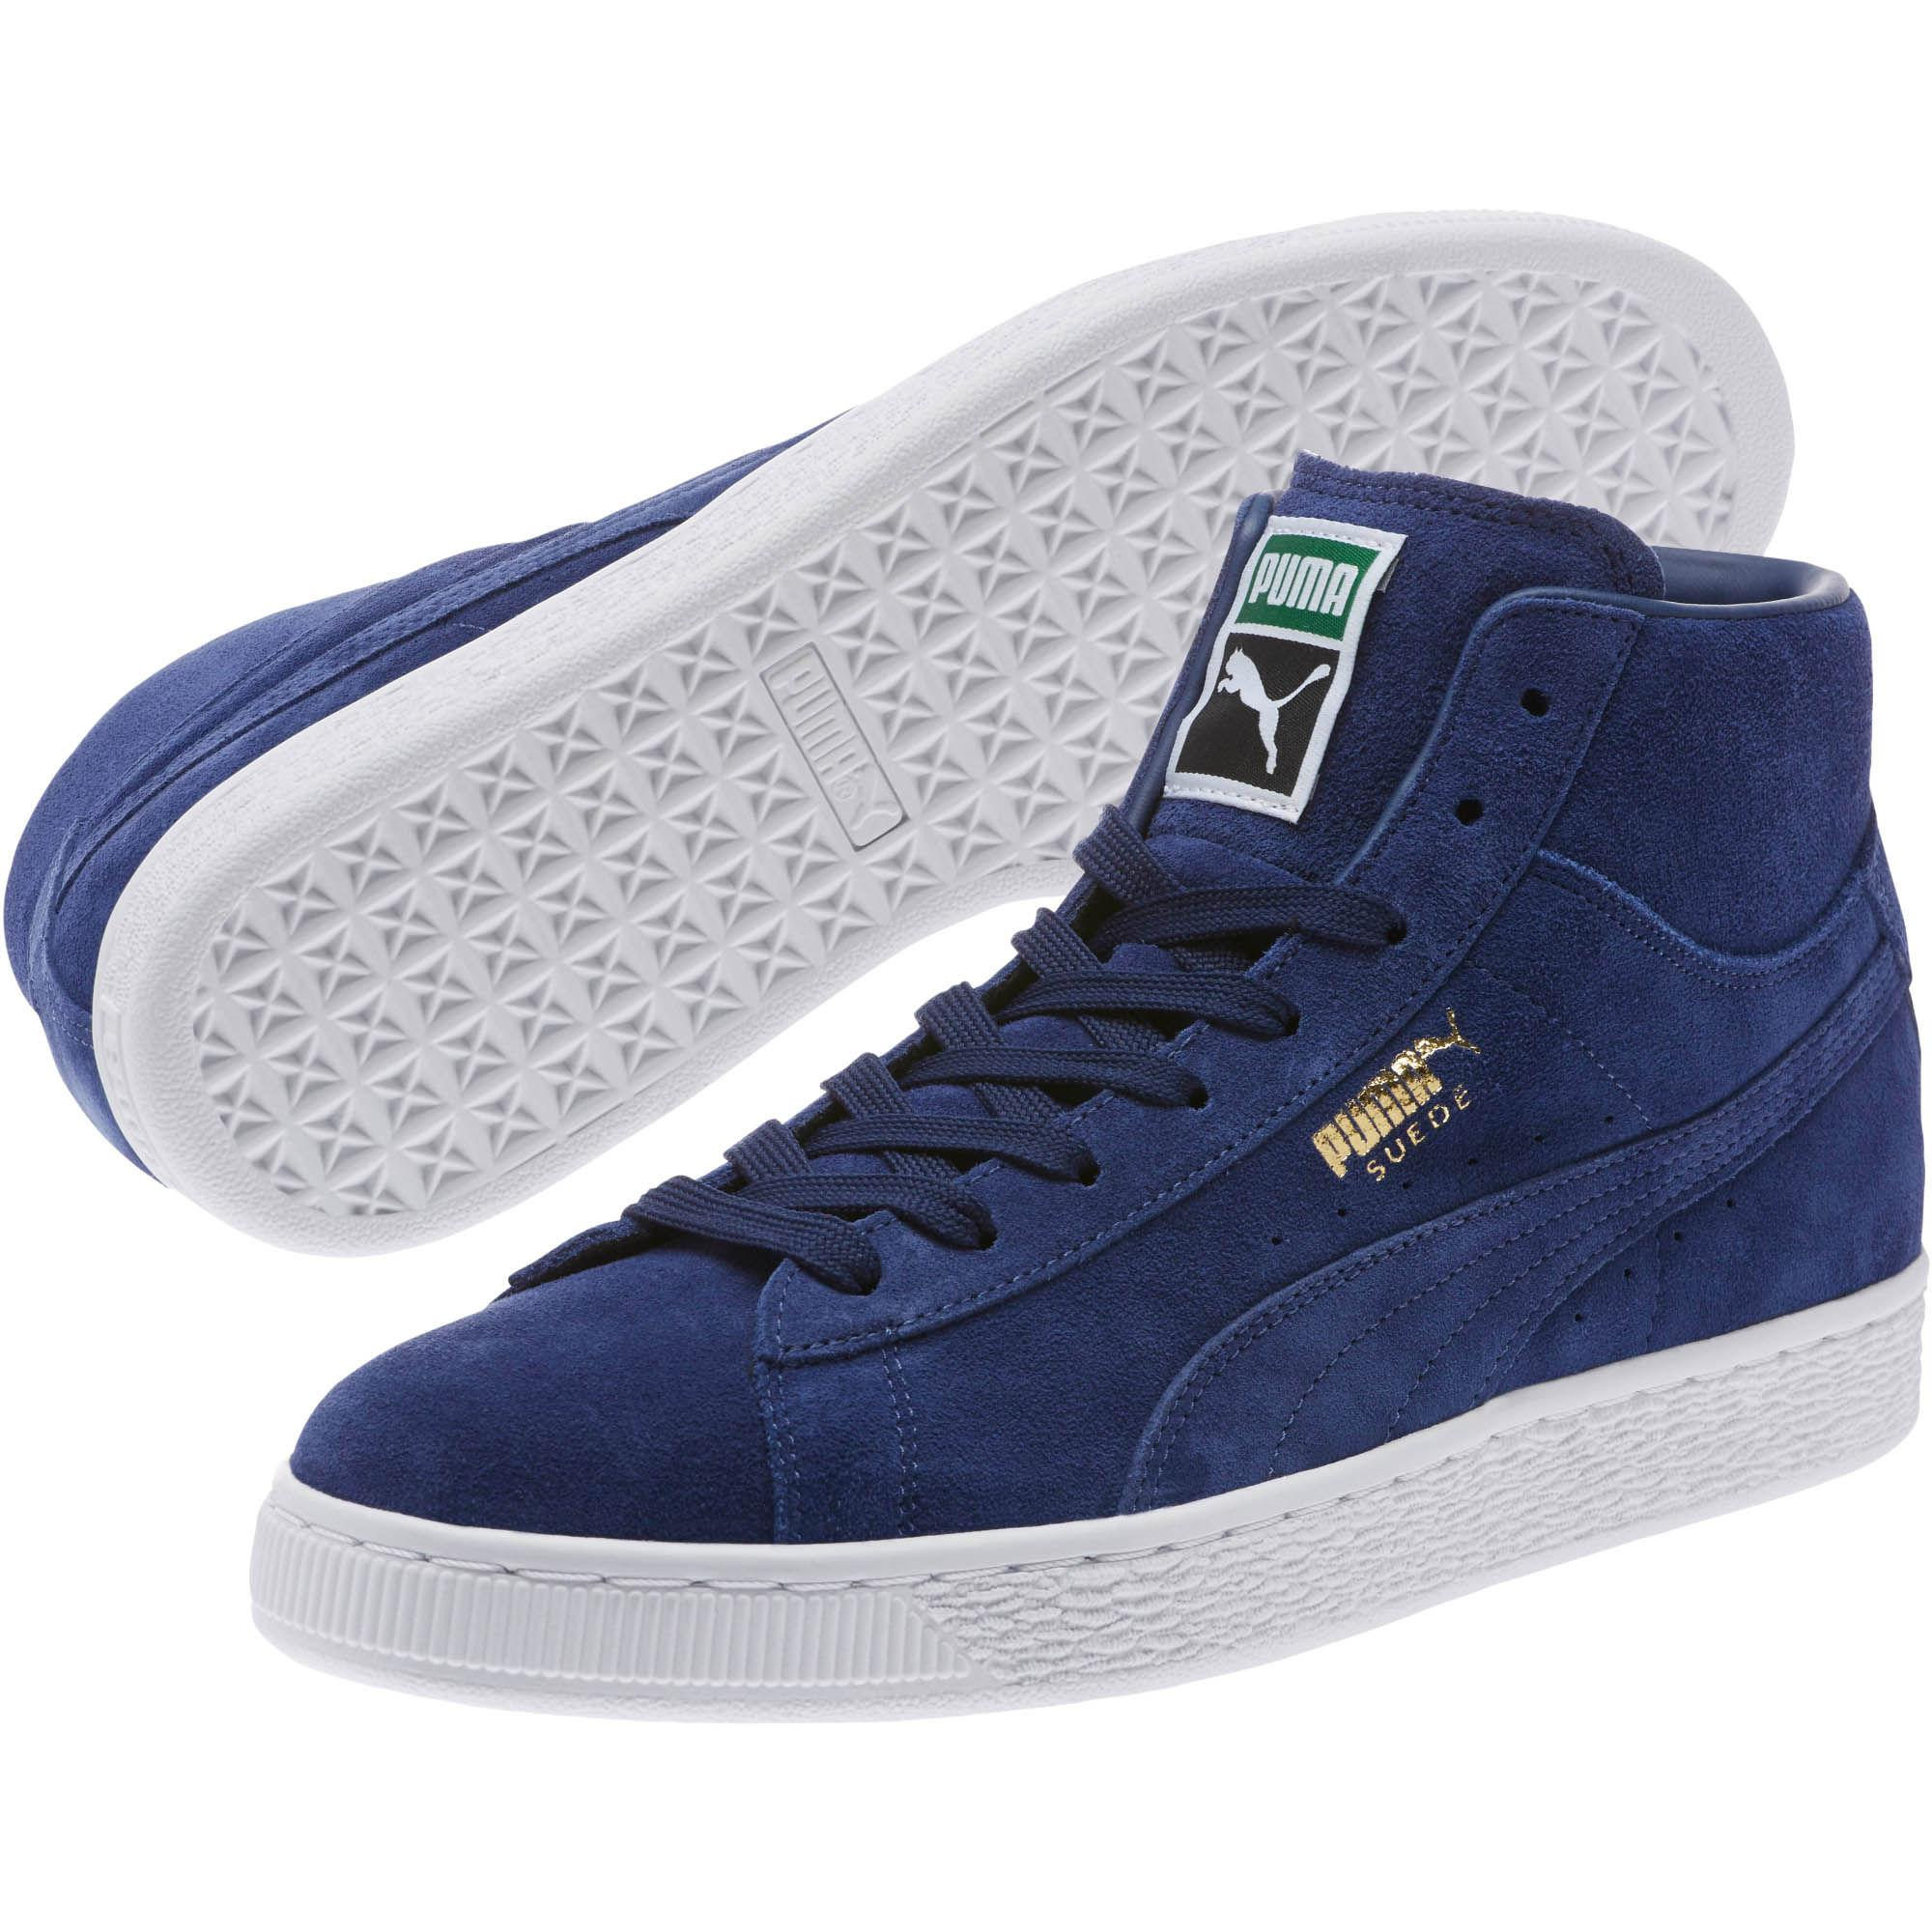 6d53ee2c257 Lyst - Puma Suede Classic Mid Sneakers in Blue for Men